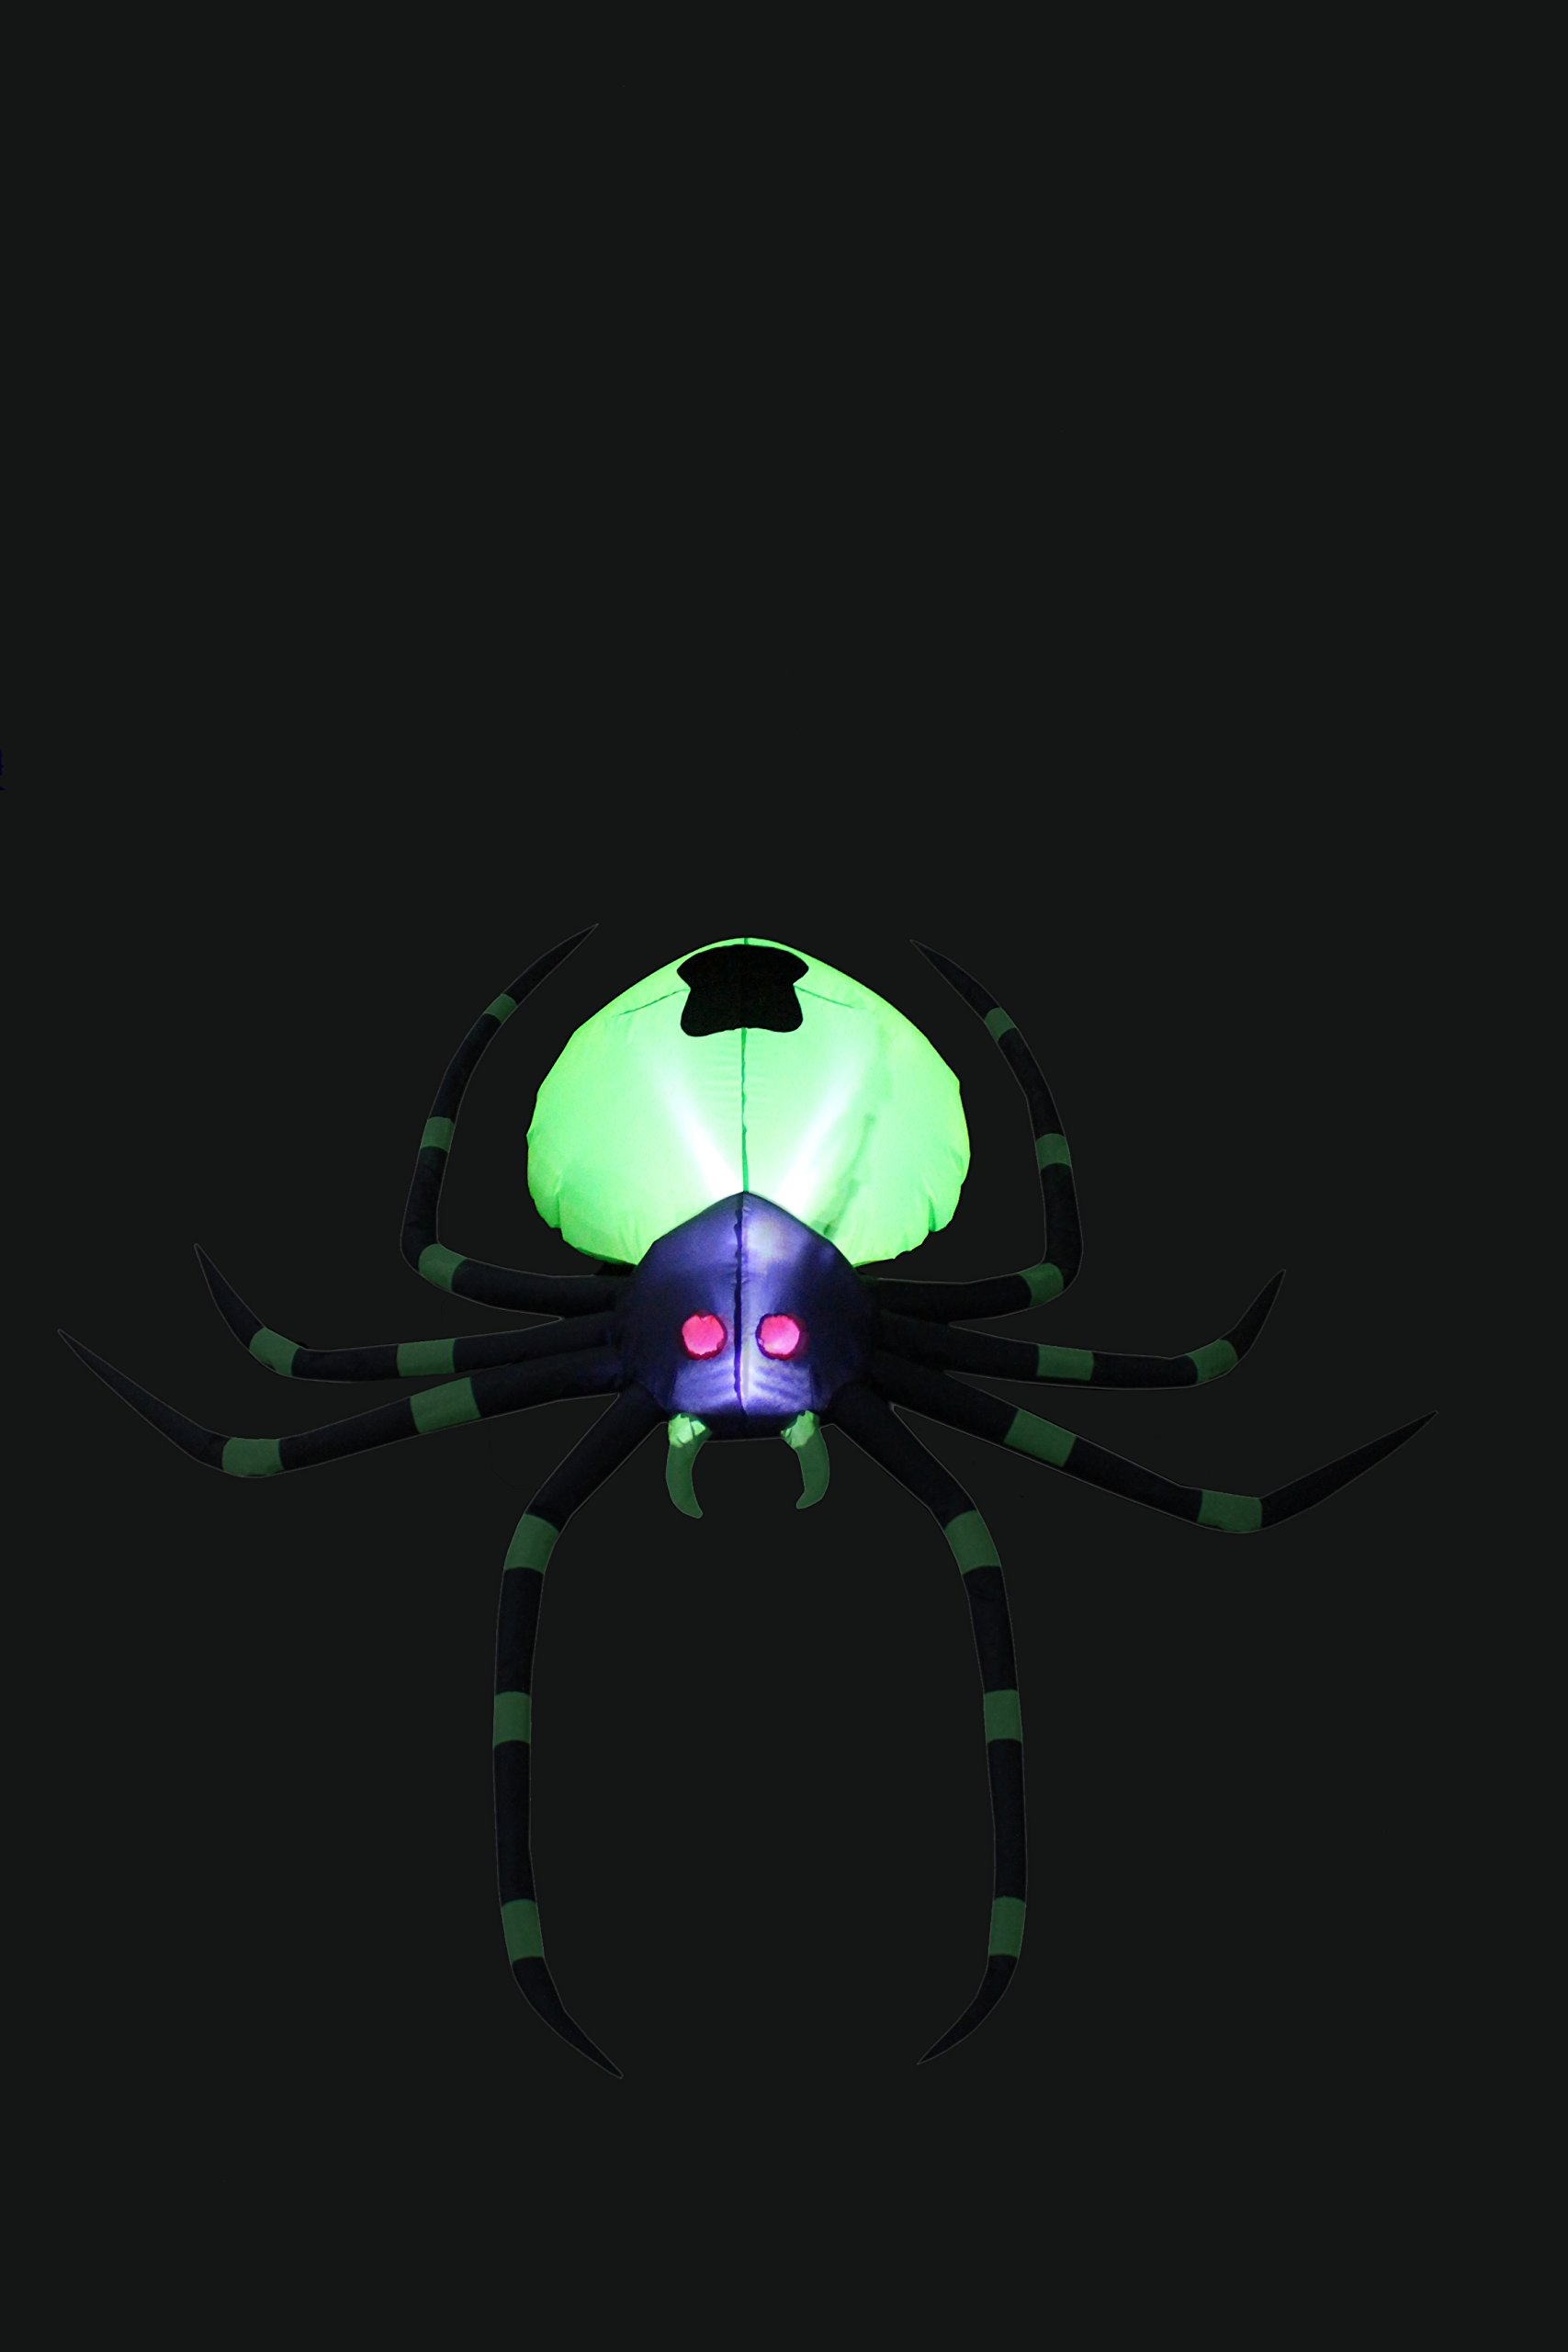 BZB Goods 6 Foot Long Halloween Inflatable Black Green Spider LED Lights Decor Outdoor Indoor Holiday Decorations, Blow up Lighted Yard Decor, Giant Lawn Inflatables Home Family Outside by BZB Goods (Image #3)